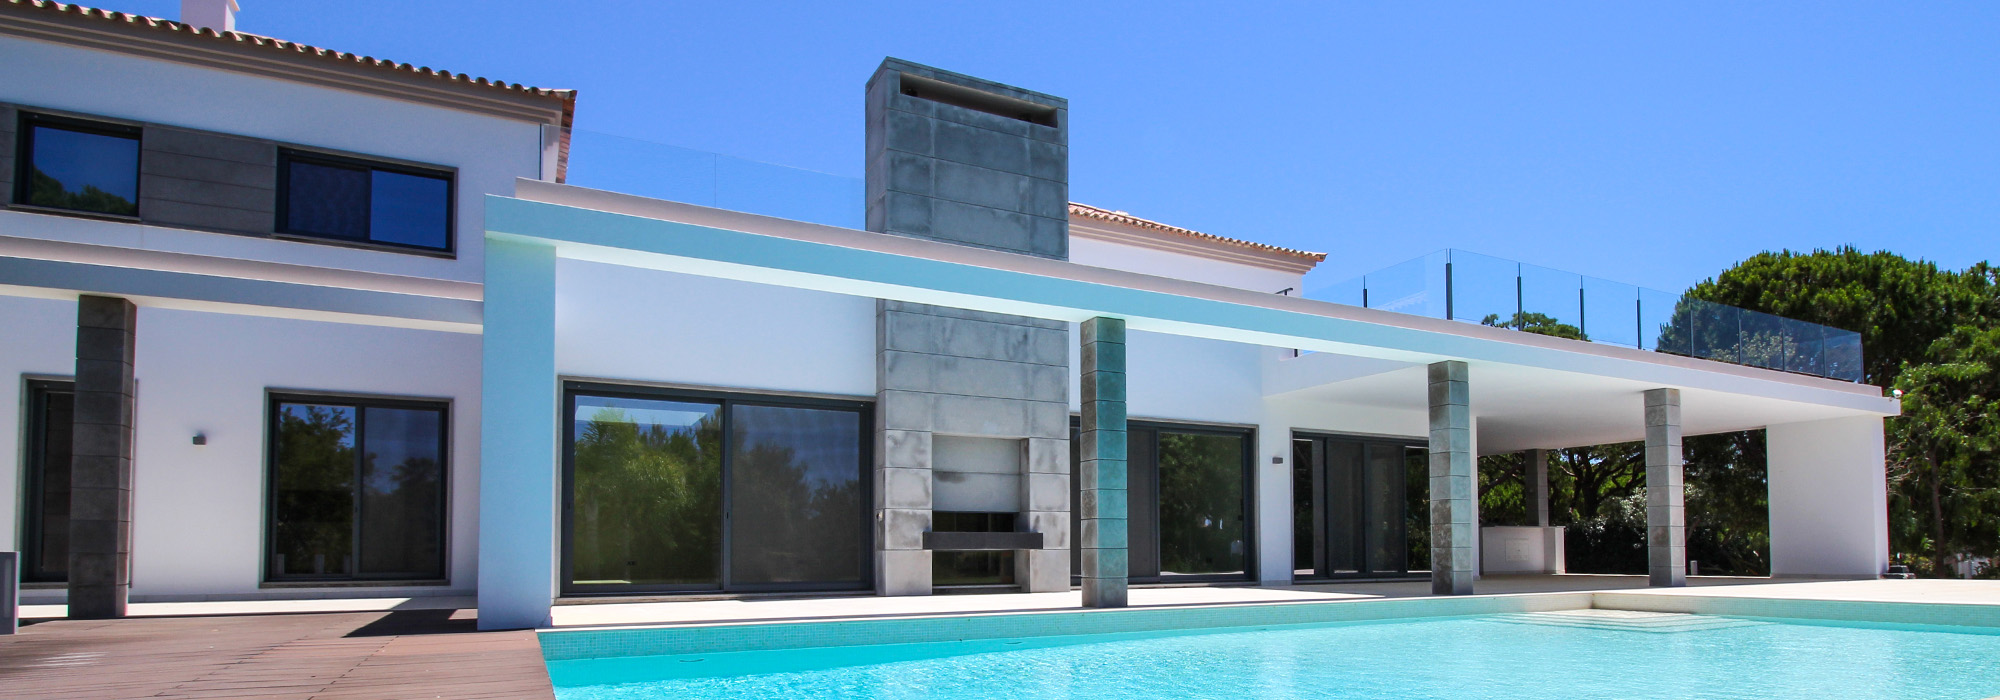 Quinta do Lago Properties